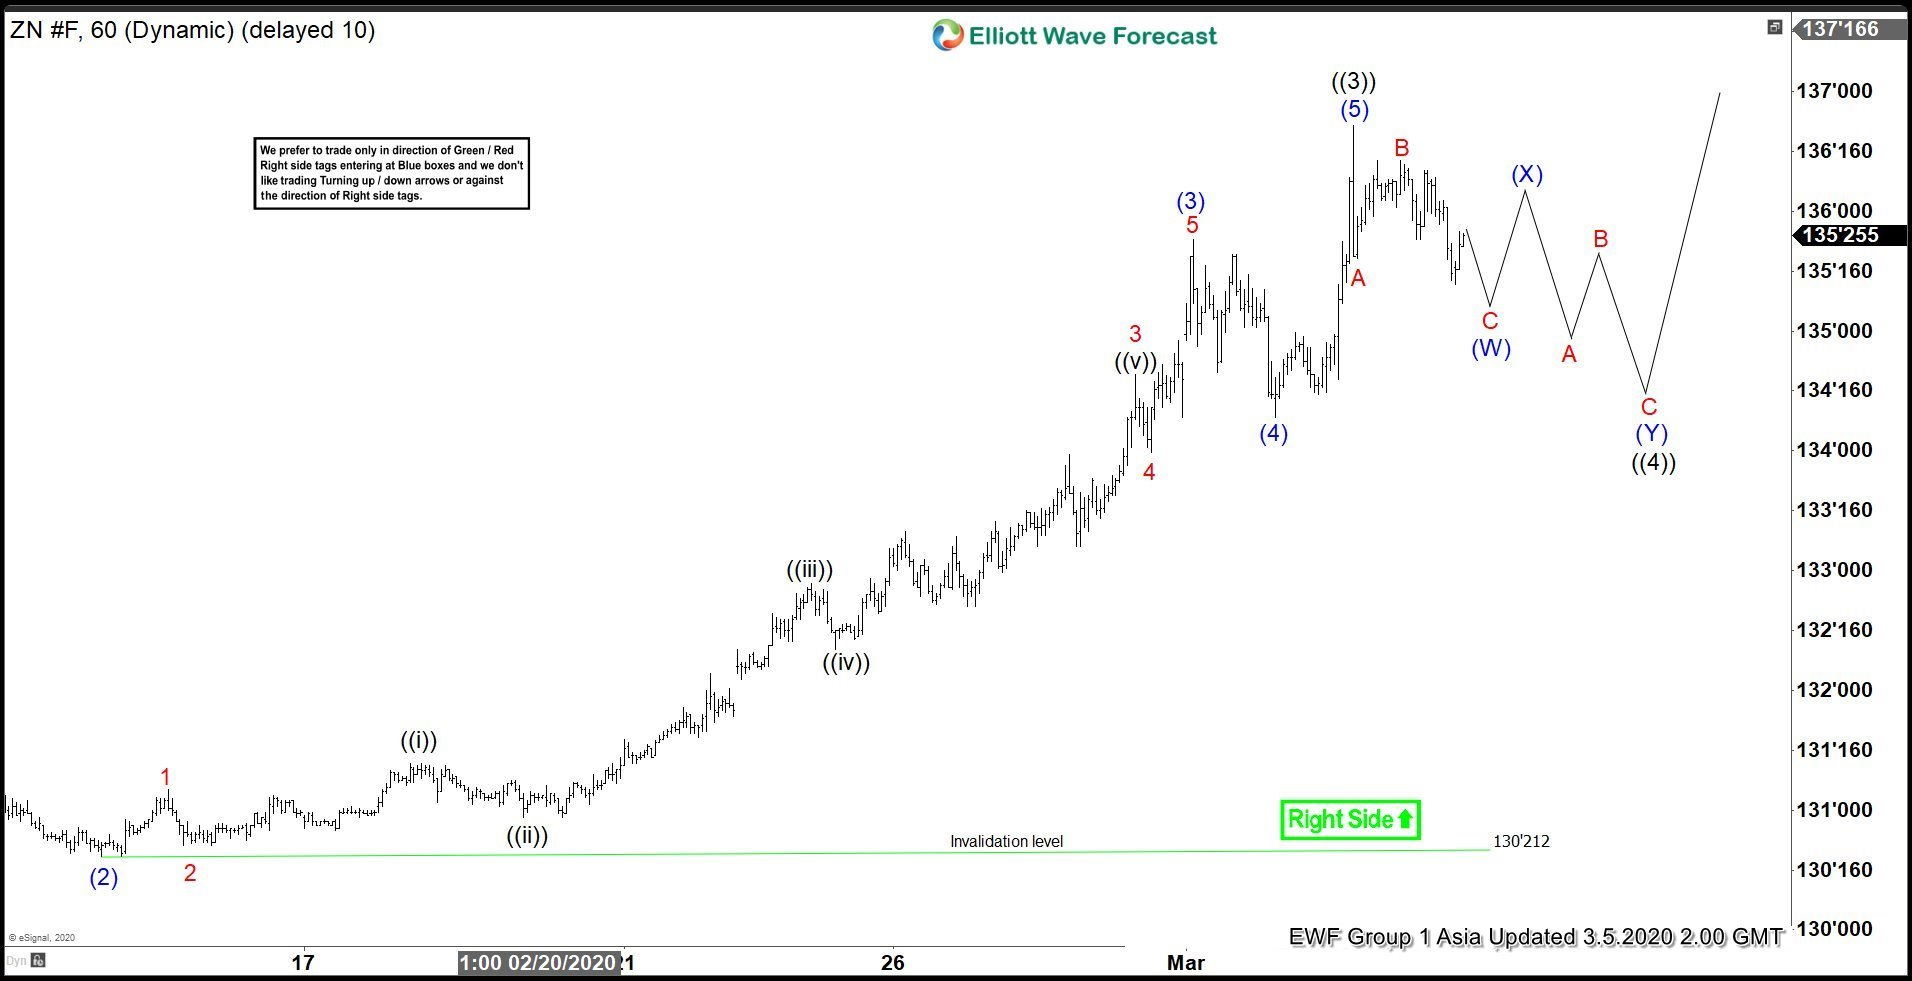 Elliott Wave View: Ten Year Notes (ZN_F) in Impulsive Rally